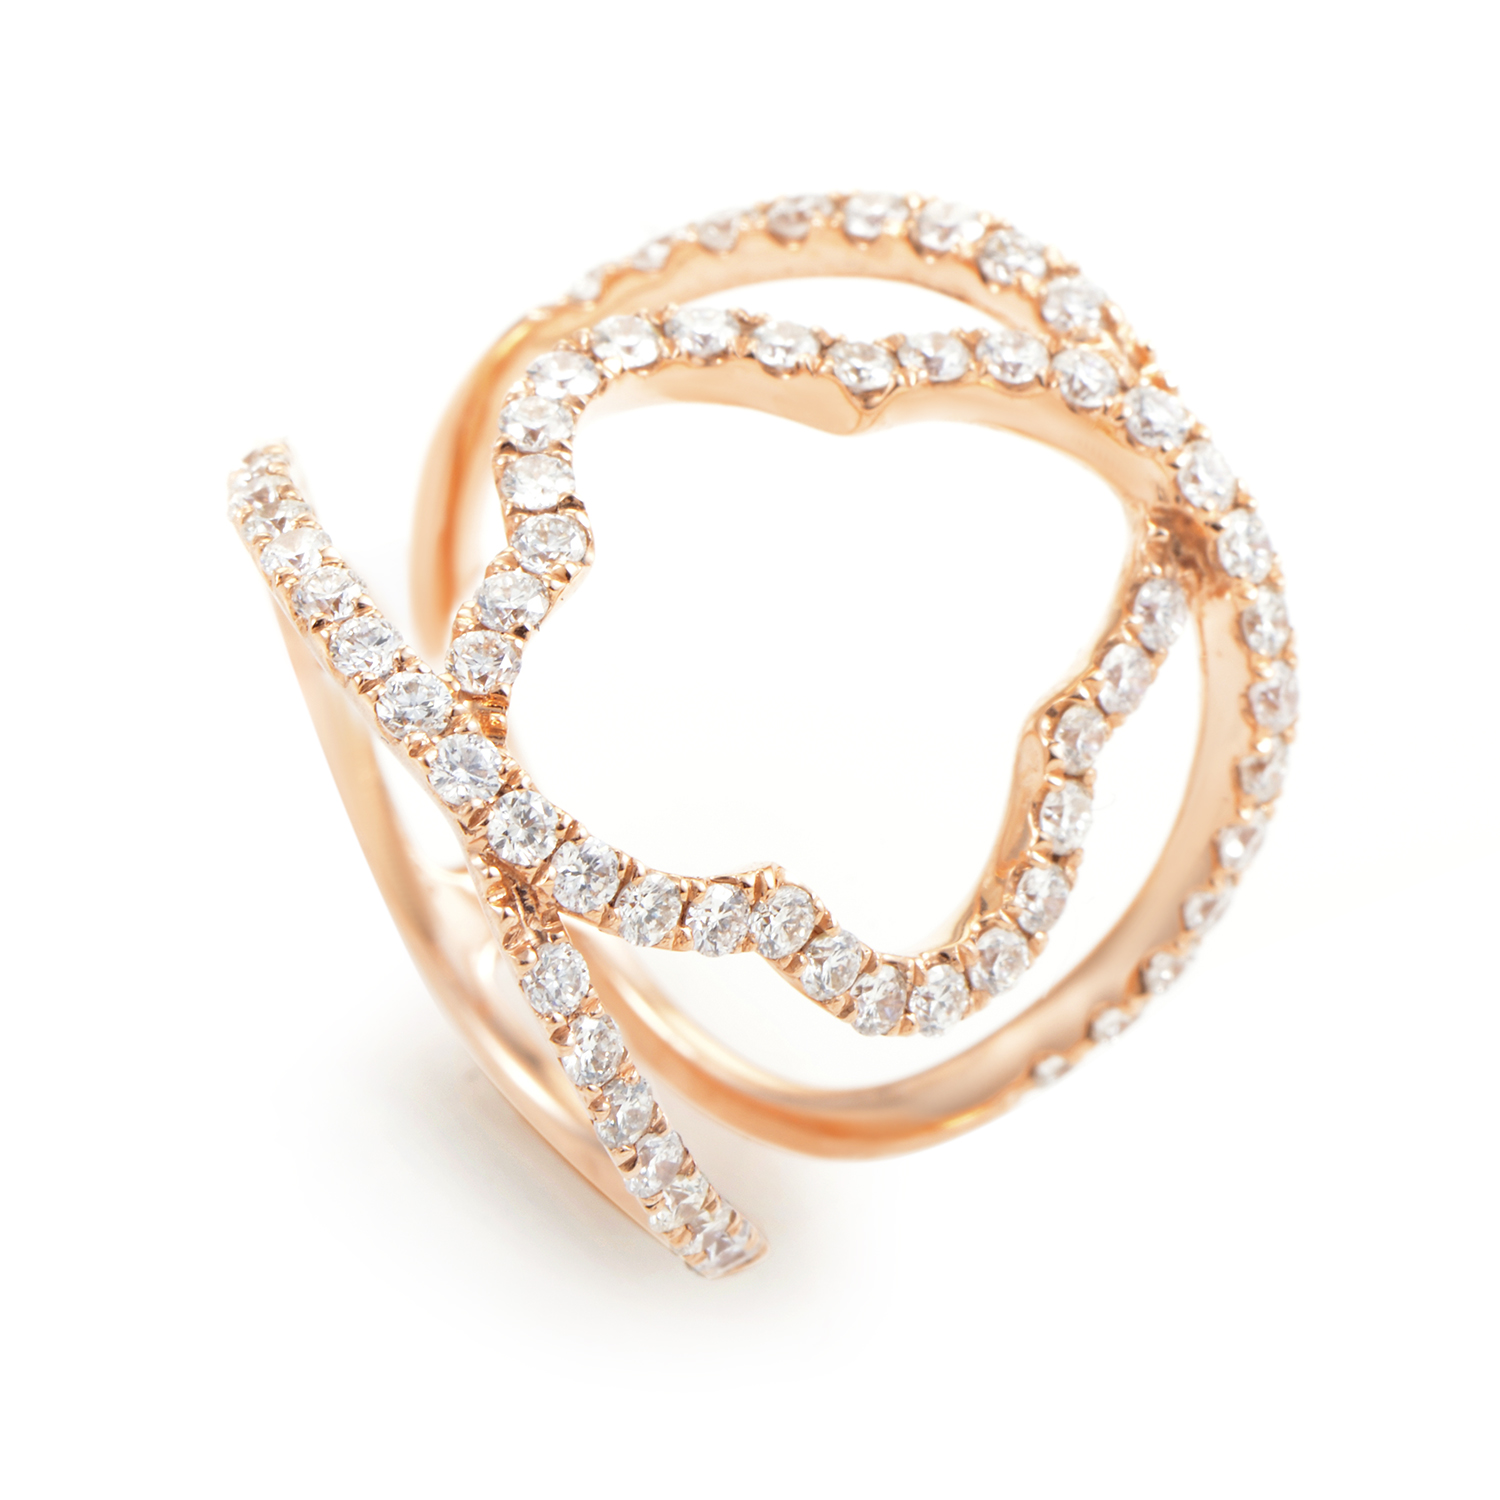 18K Rose Gold & Diamond Quatrefoil Ring ALR-11751R